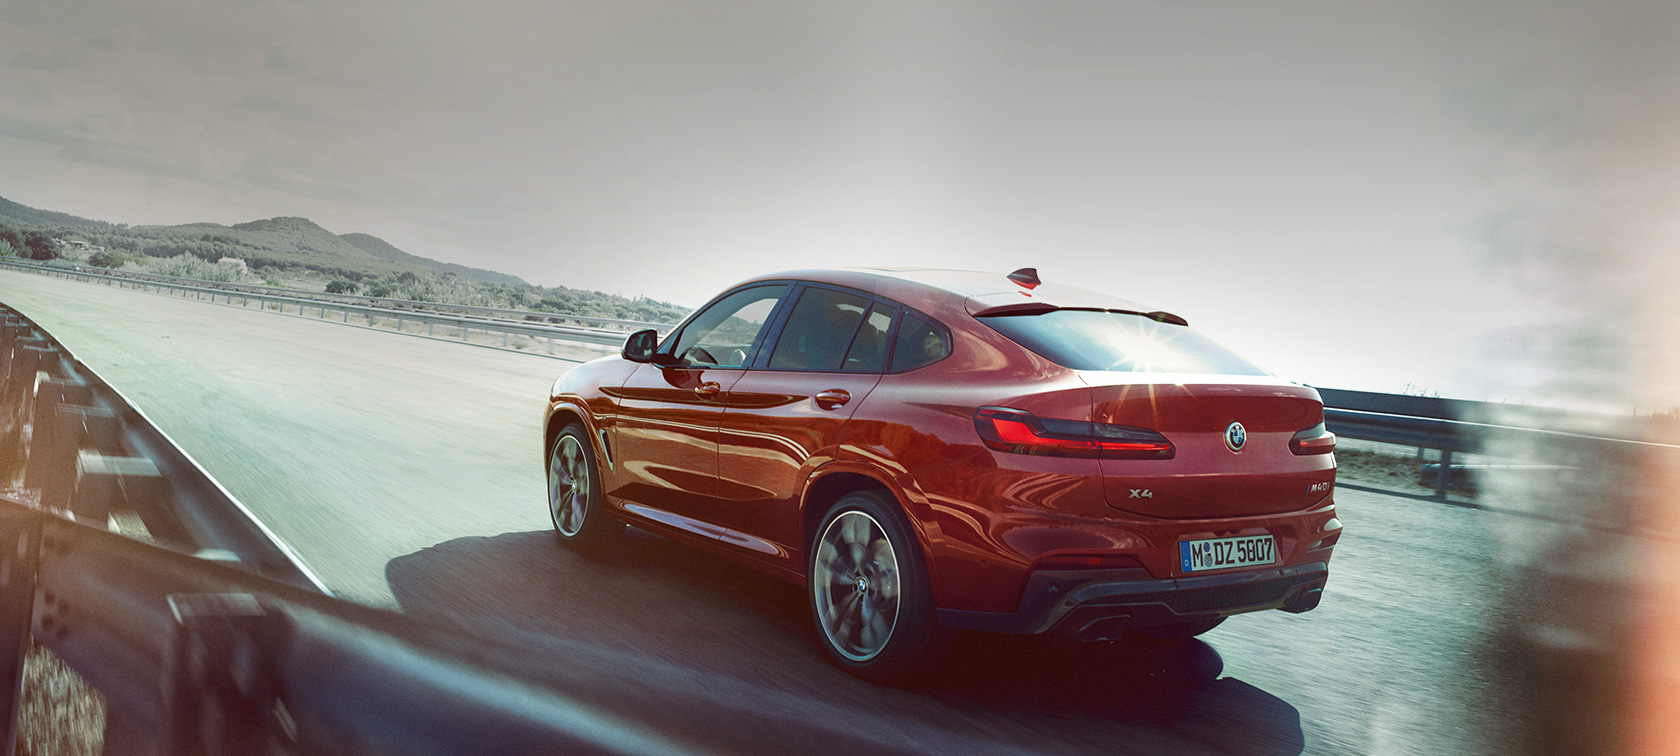 BMW X4 M40i G02 2018 Flamenco Red brilliant effect Red Vista tre quarti posteriorein movimento su strada